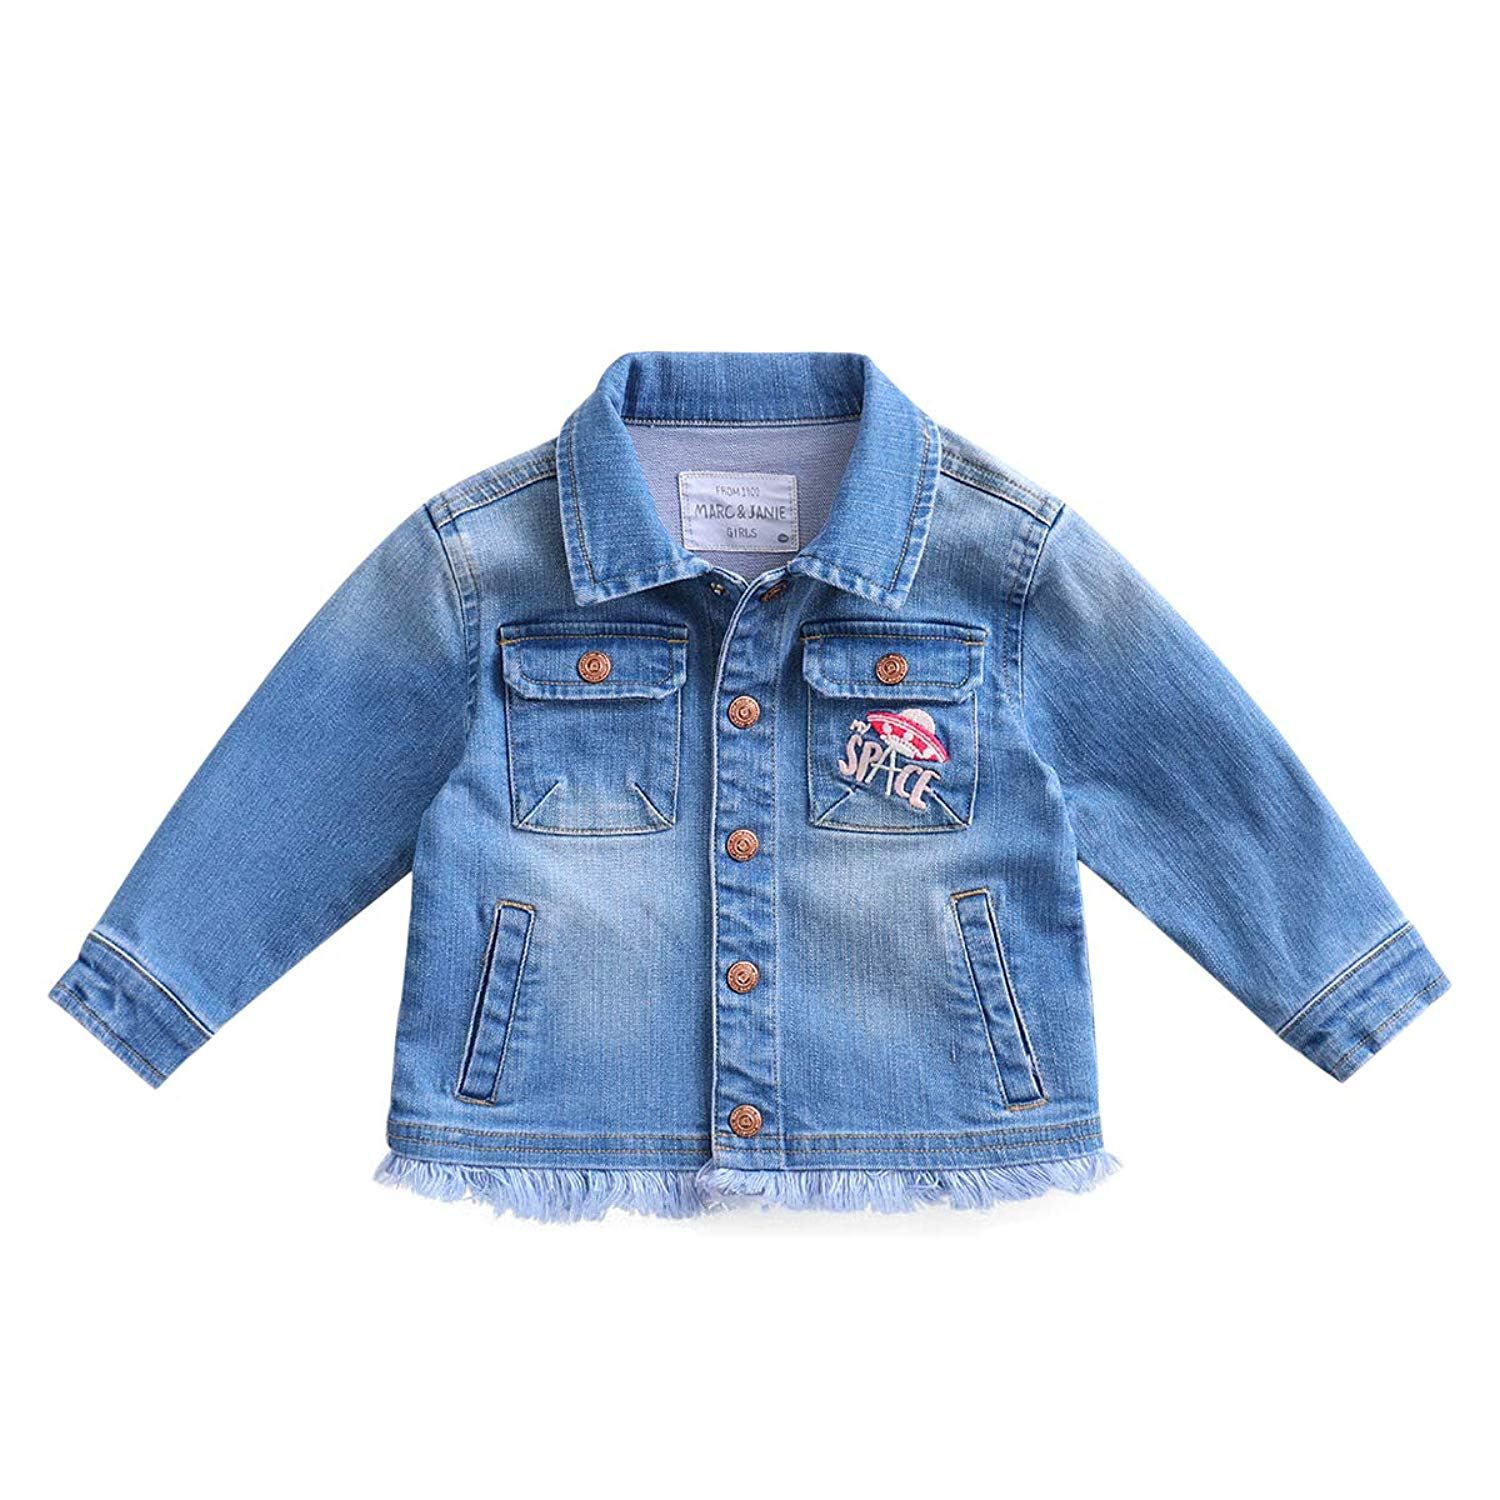 Cossky Little Boys Jean Jacket Personalized Denim Jacket Jackets Coats